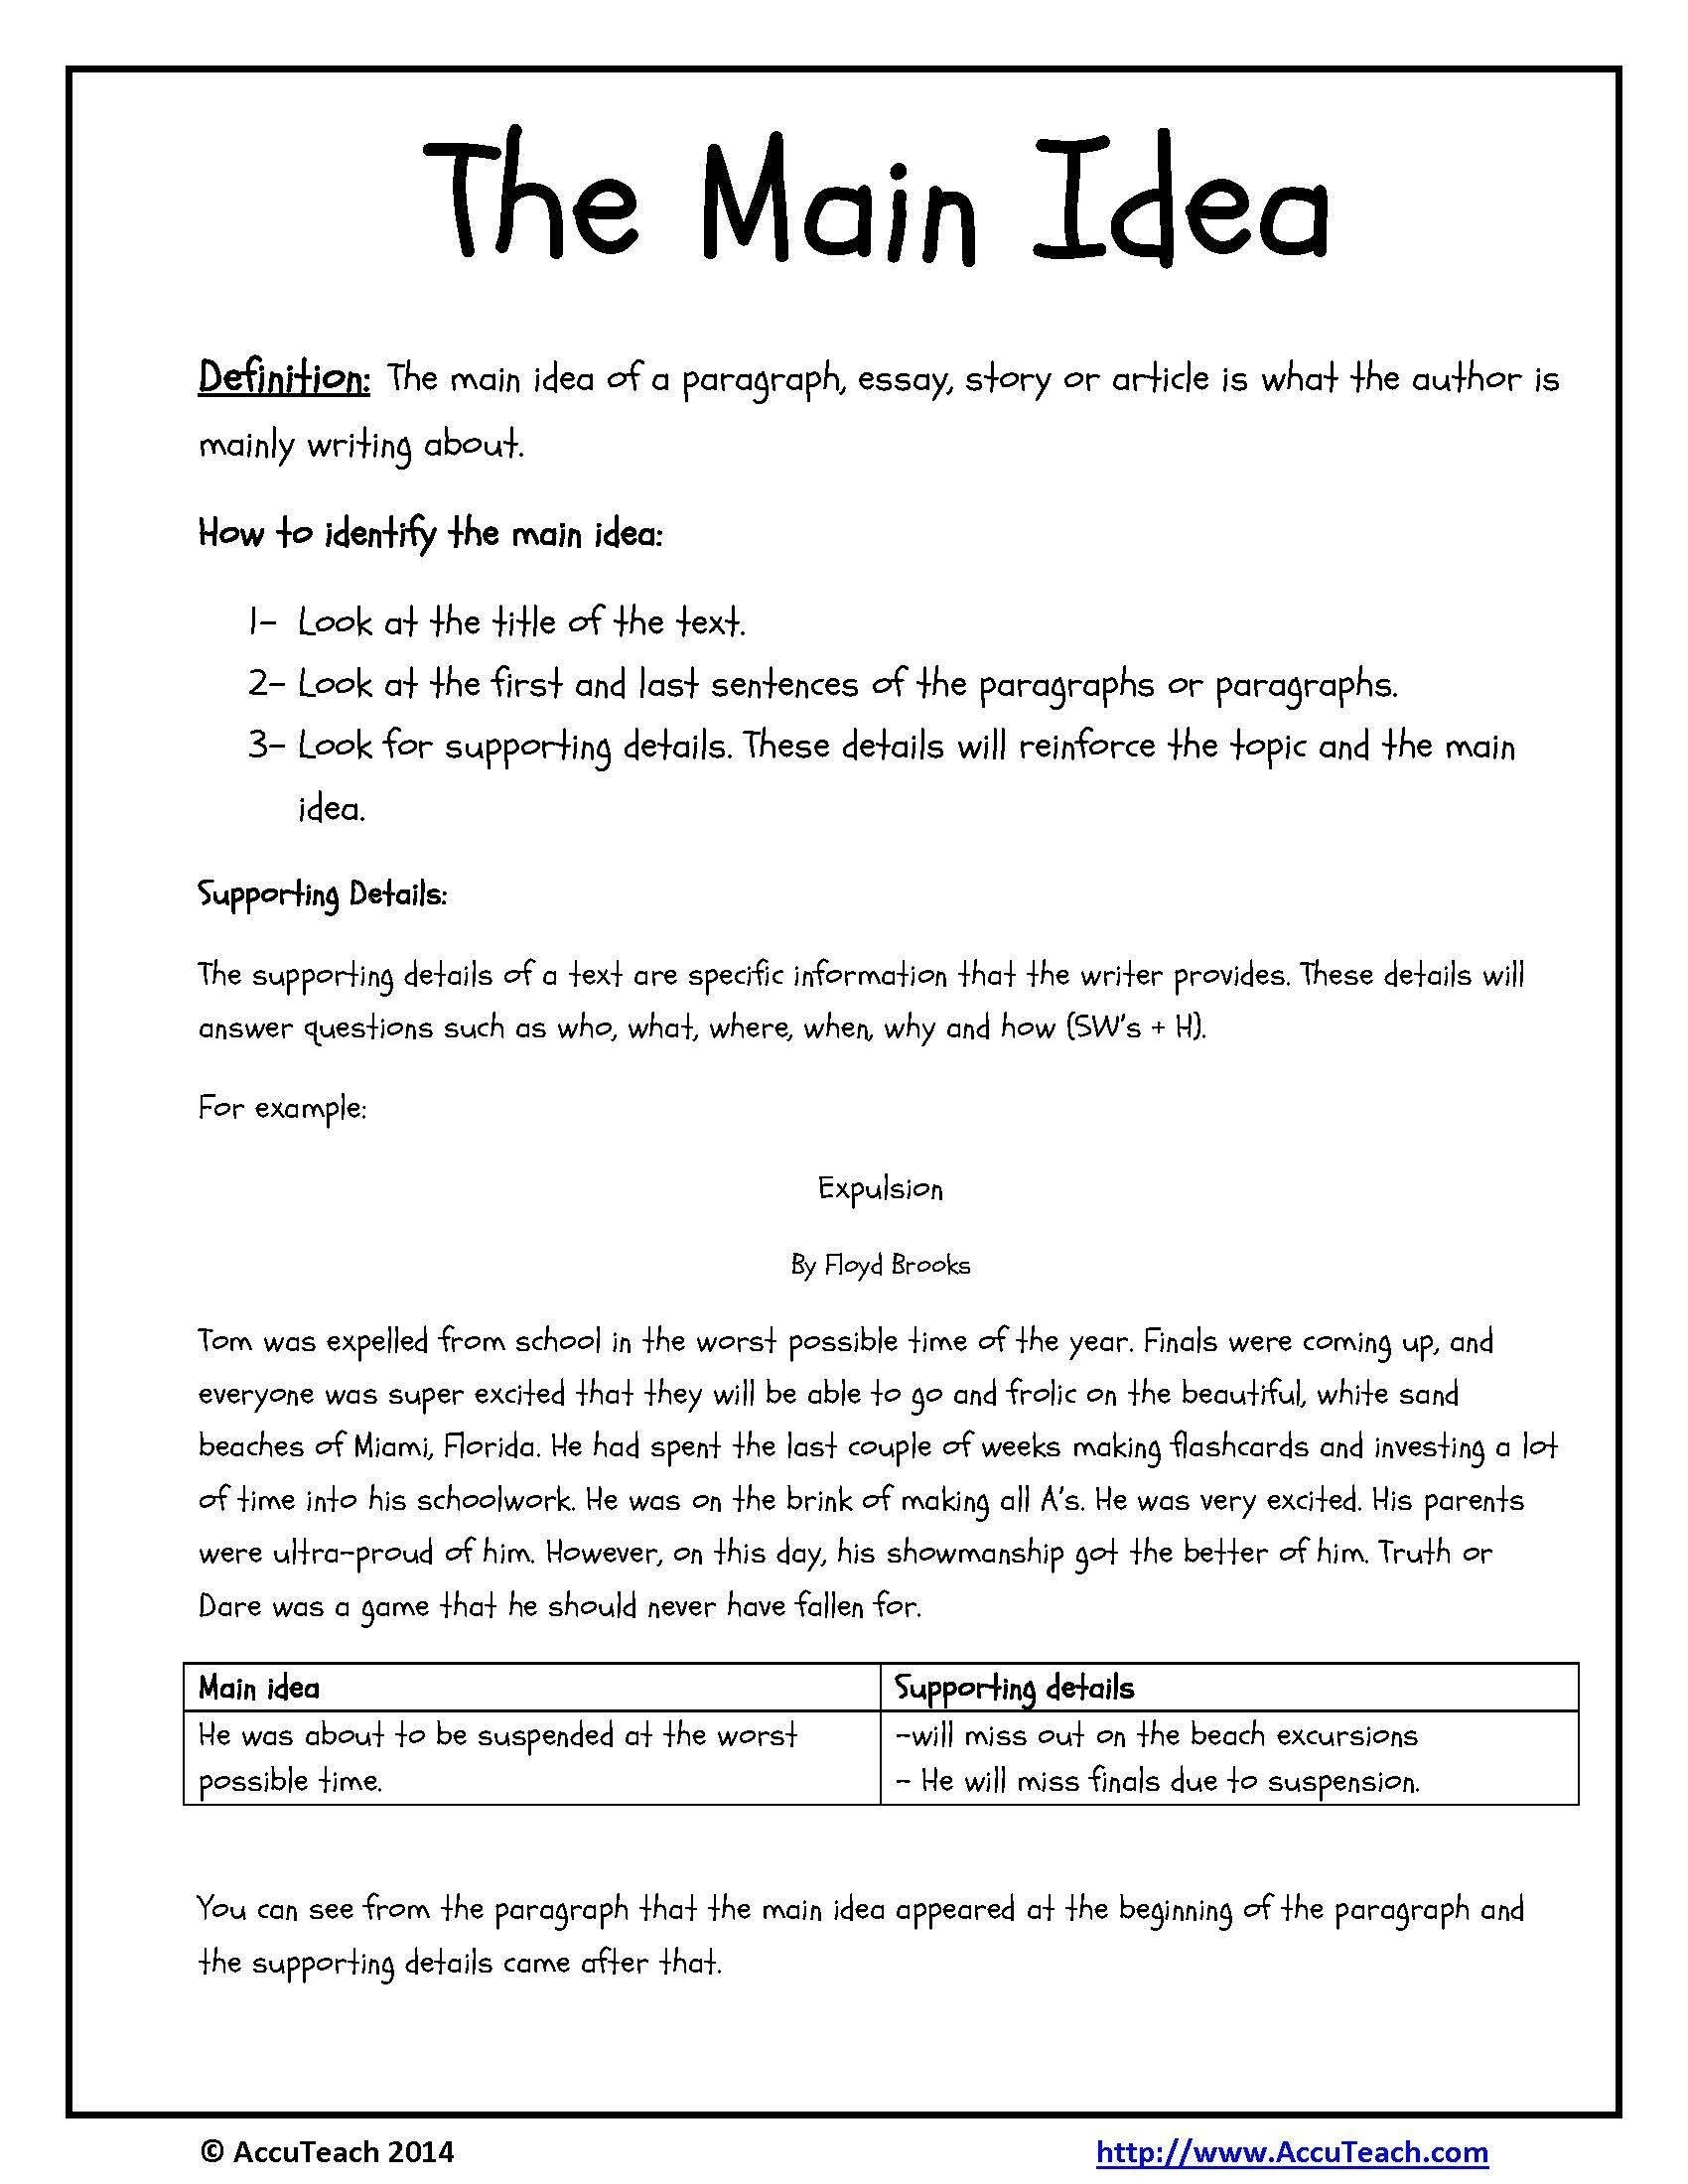 10 Ideal Finding The Main Idea Worksheets middle school main idea worksheets free worksheets library 2020